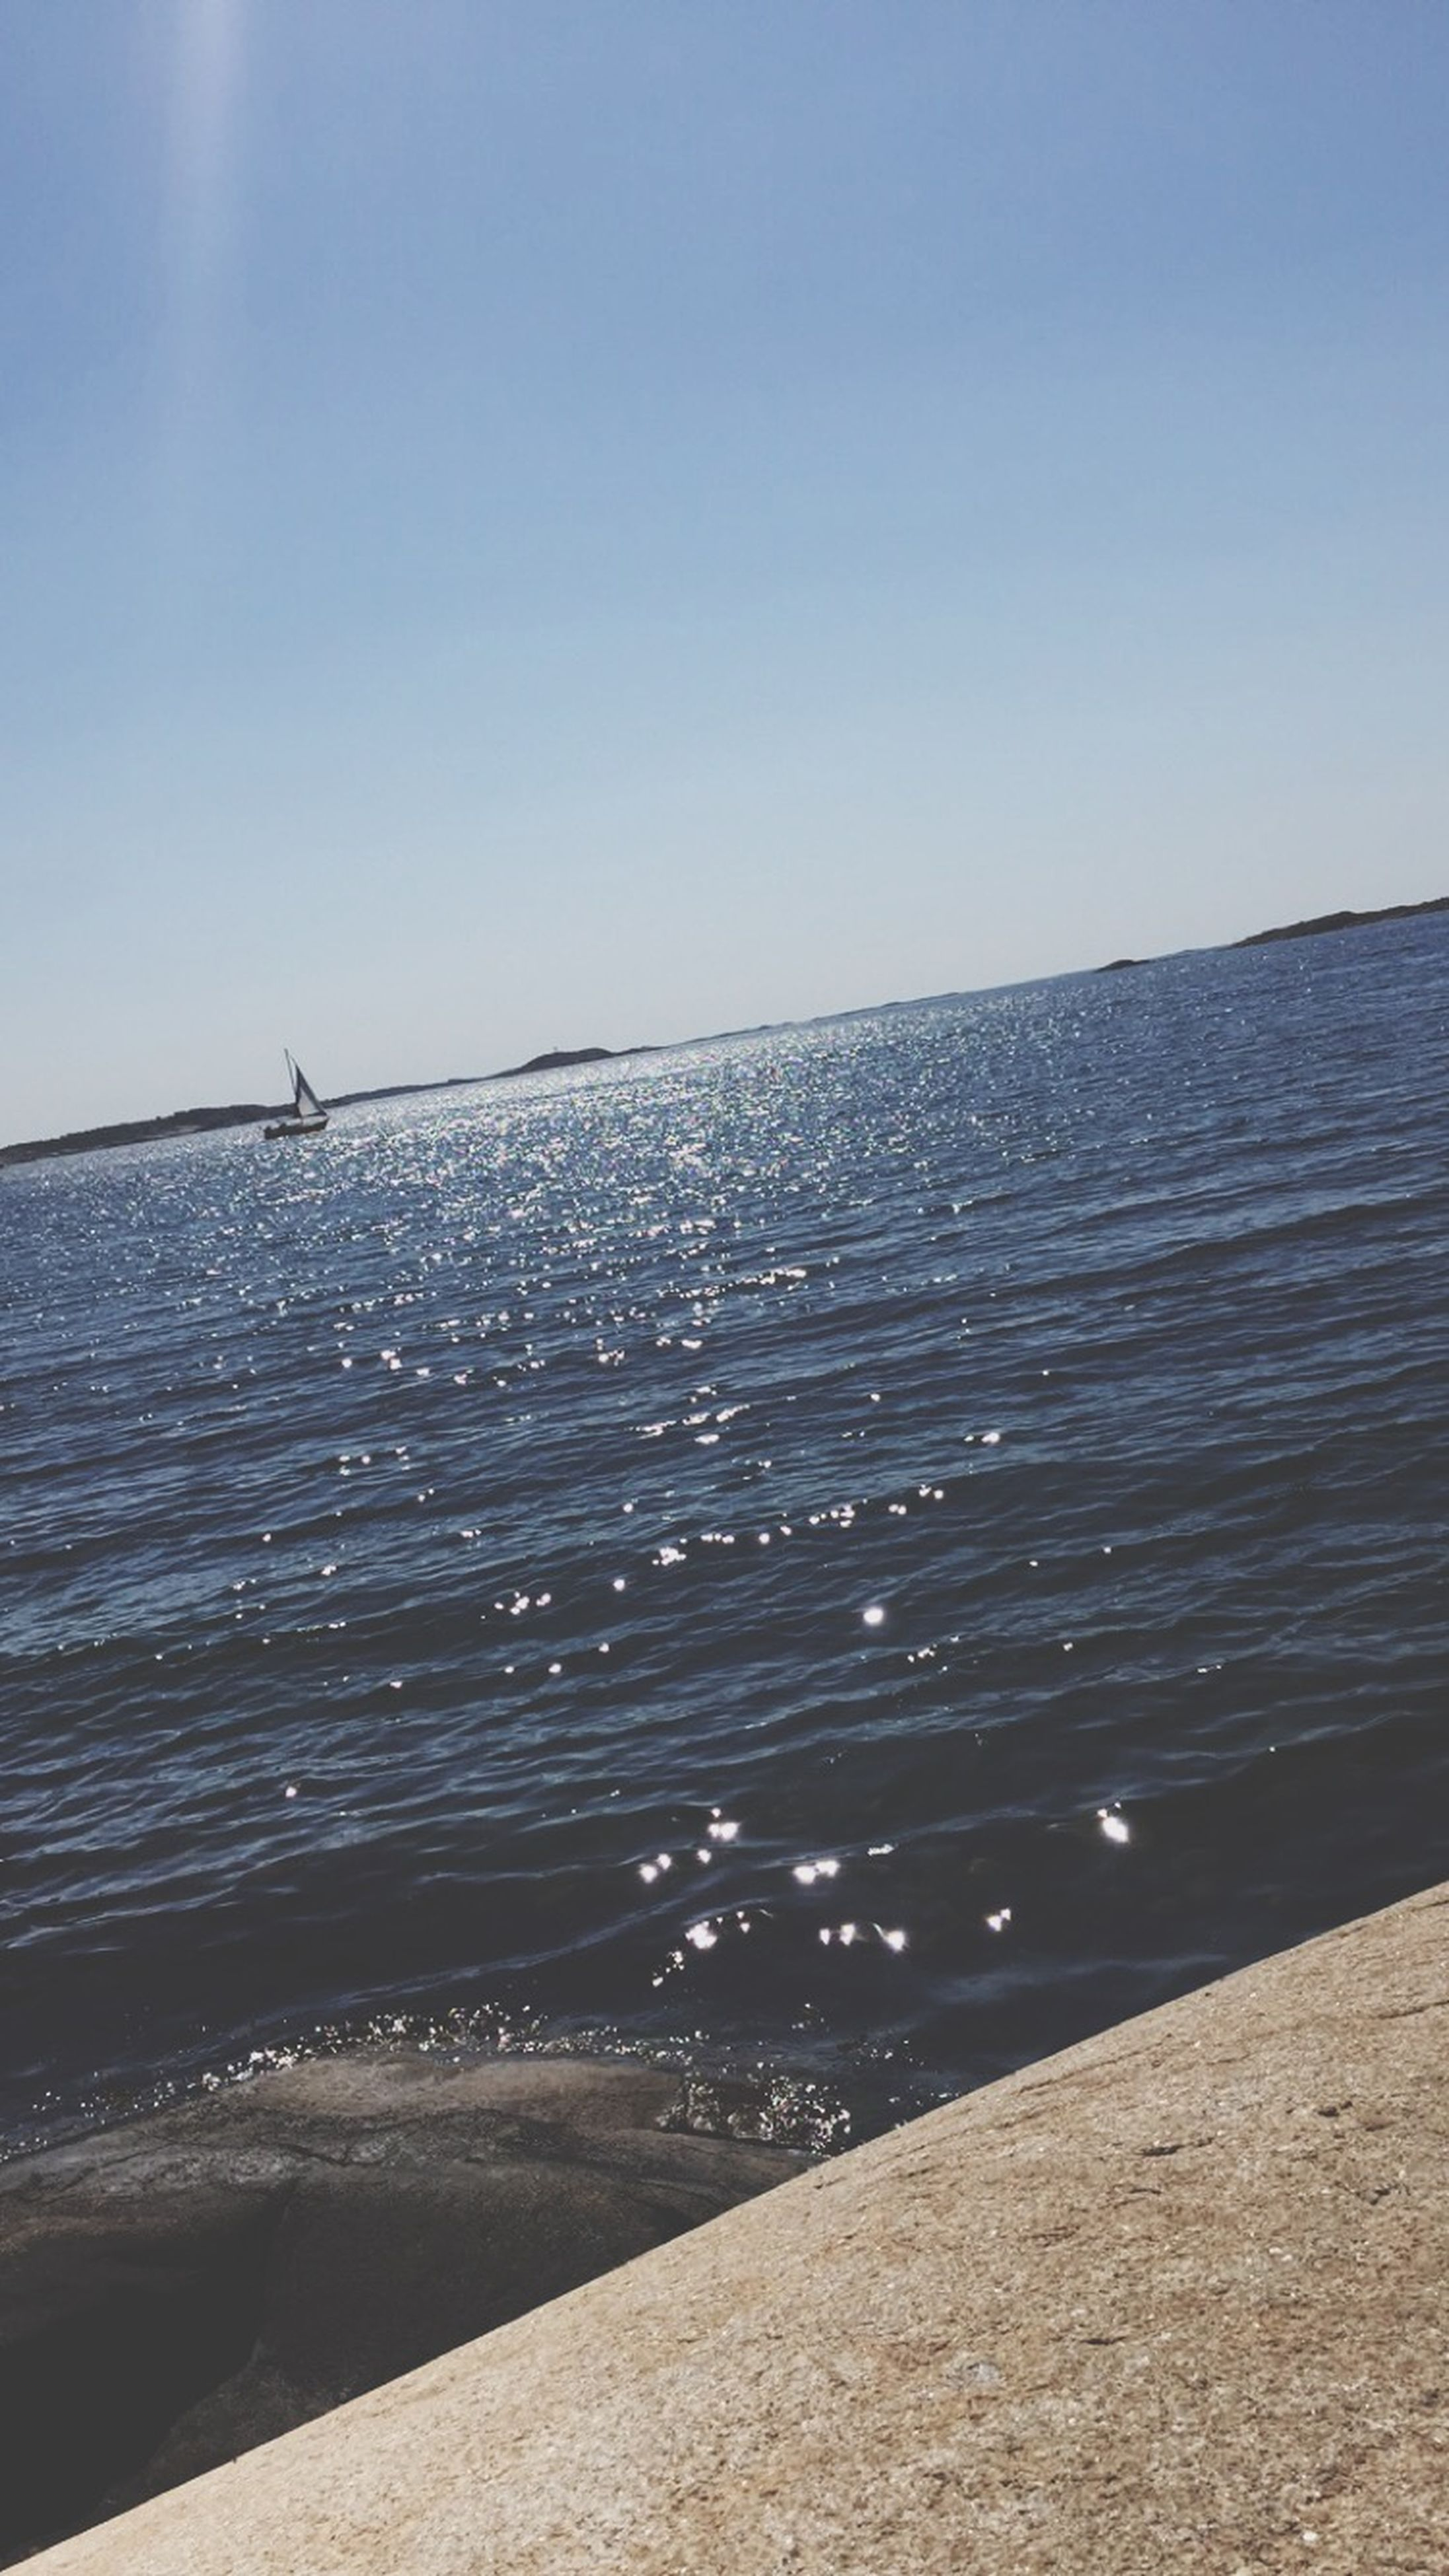 water, sea, clear sky, horizon over water, copy space, tranquil scene, tranquility, scenics, beauty in nature, blue, rippled, nature, sunlight, sky, idyllic, day, outdoors, waterfront, beach, no people